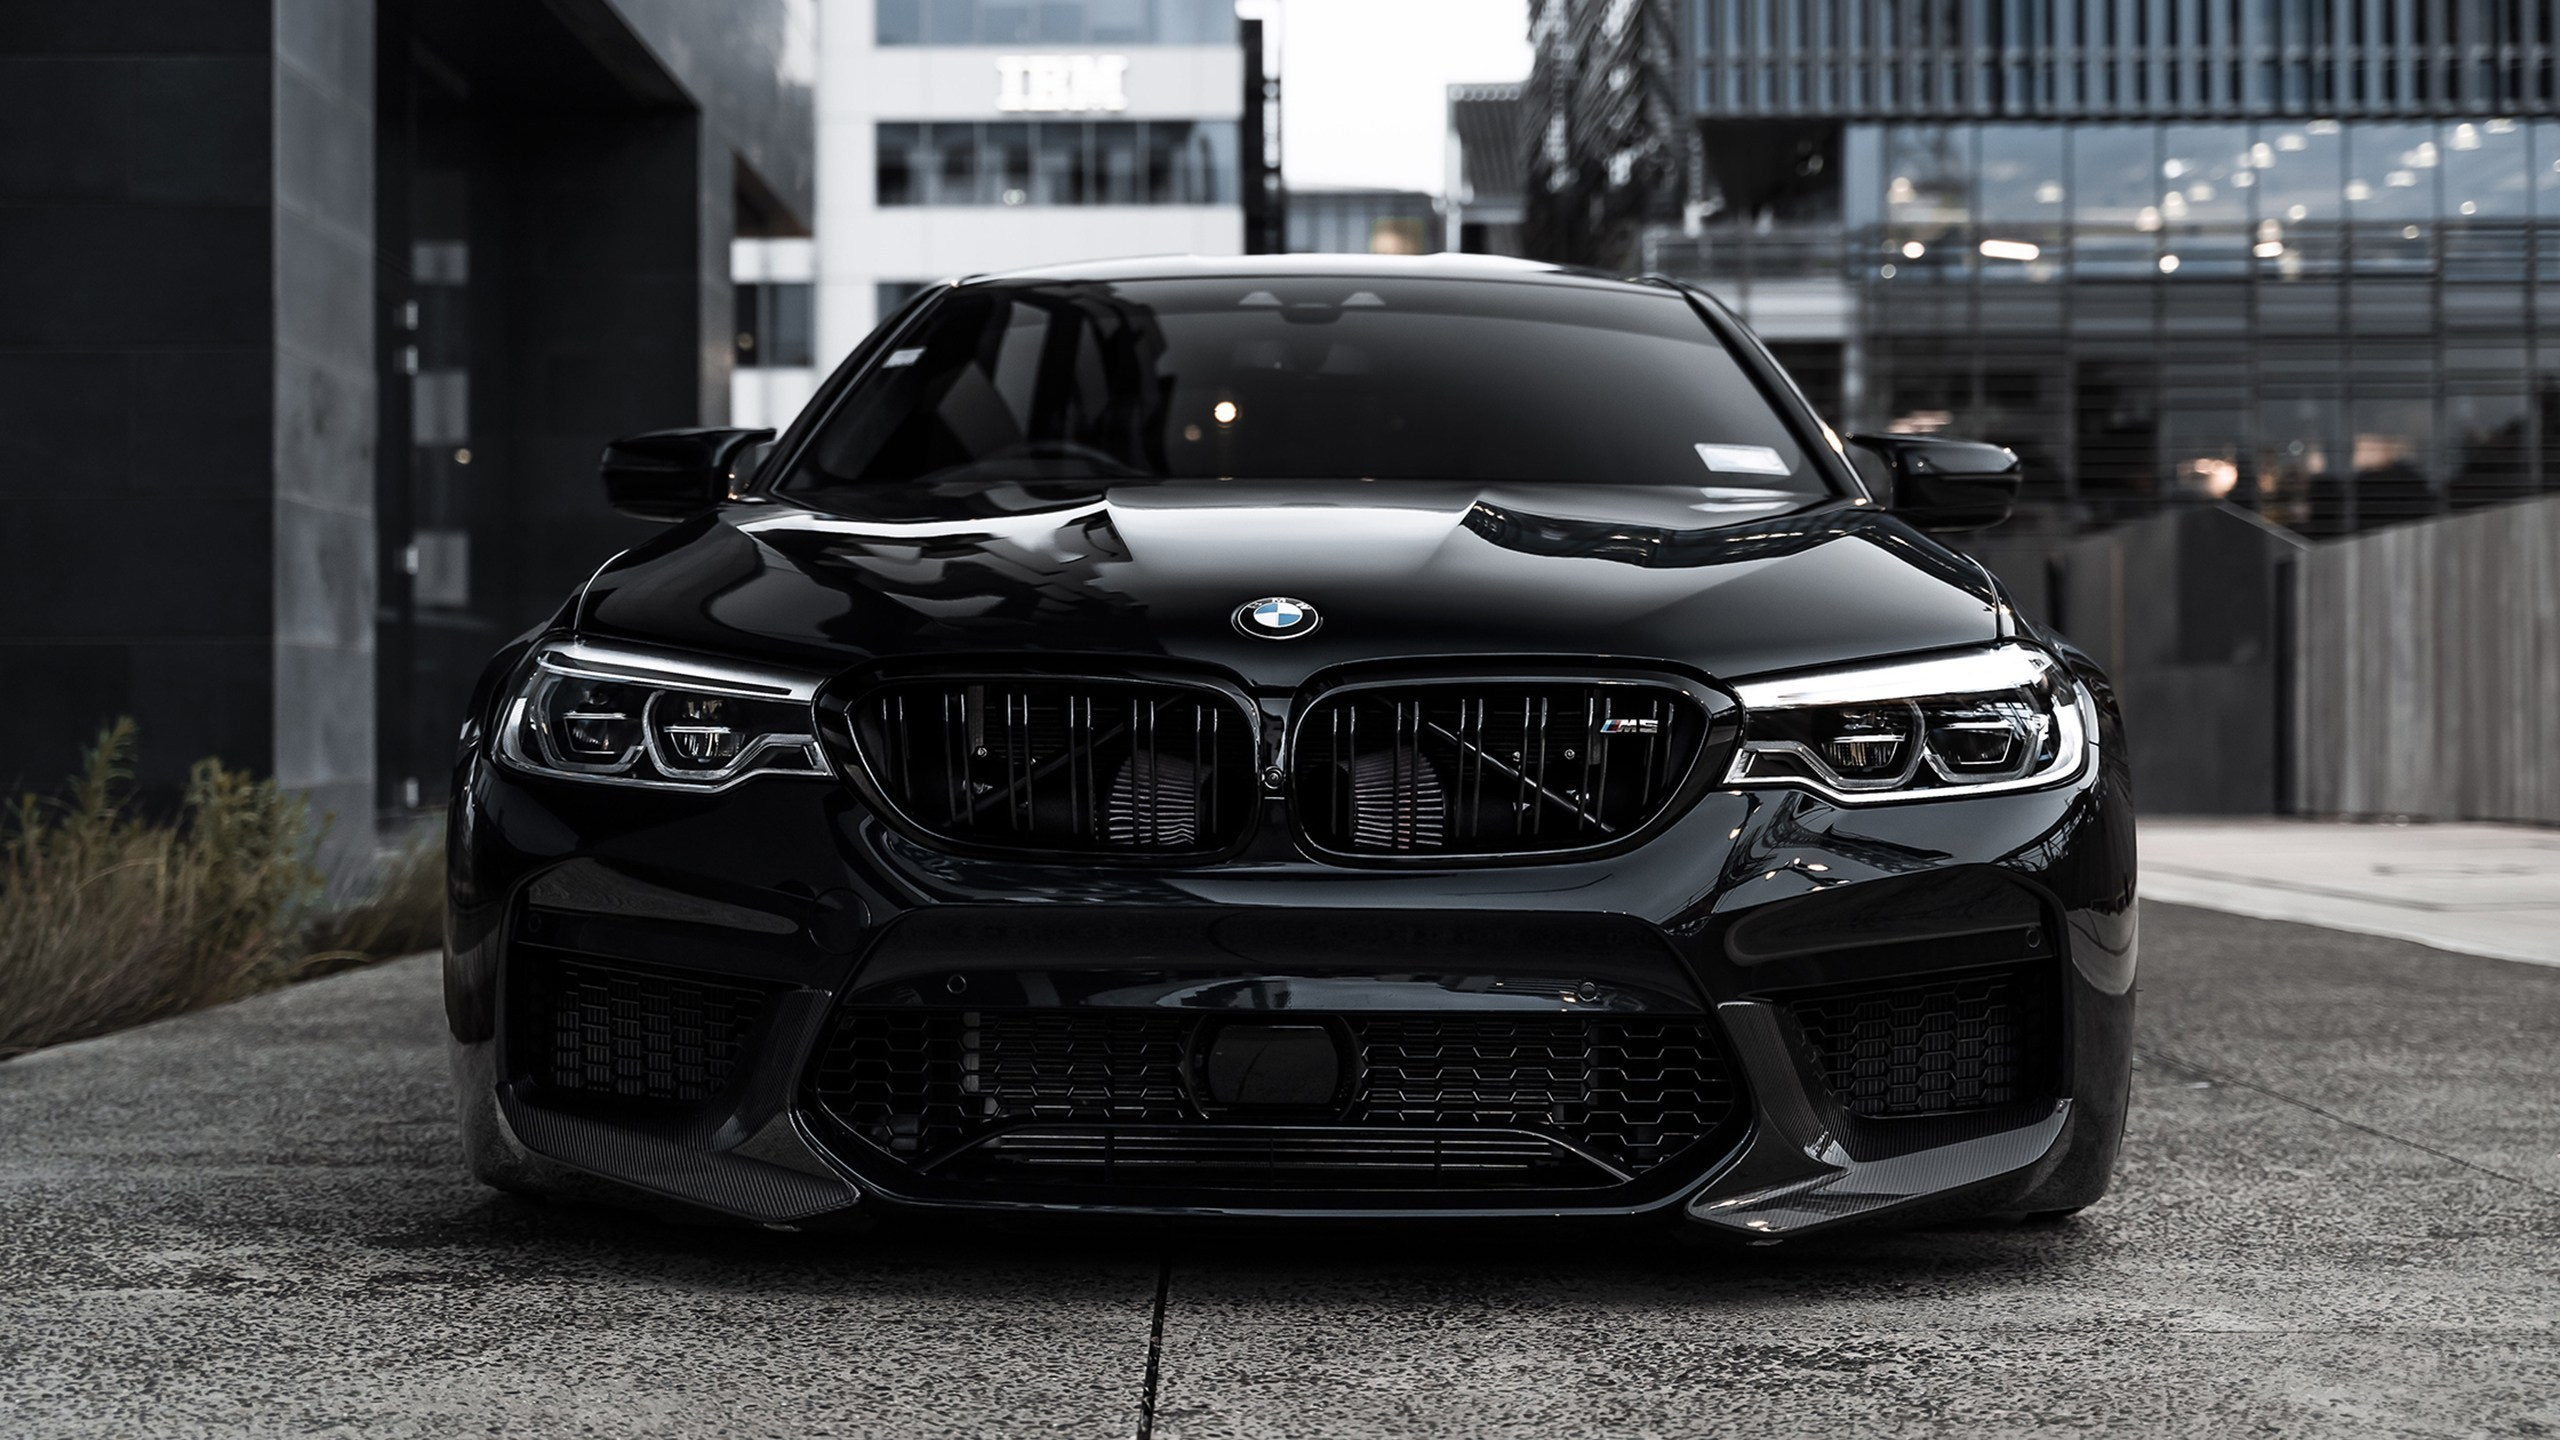 Bmw M5 2274463   HD Wallpaper Backgrounds Download 2560x1440